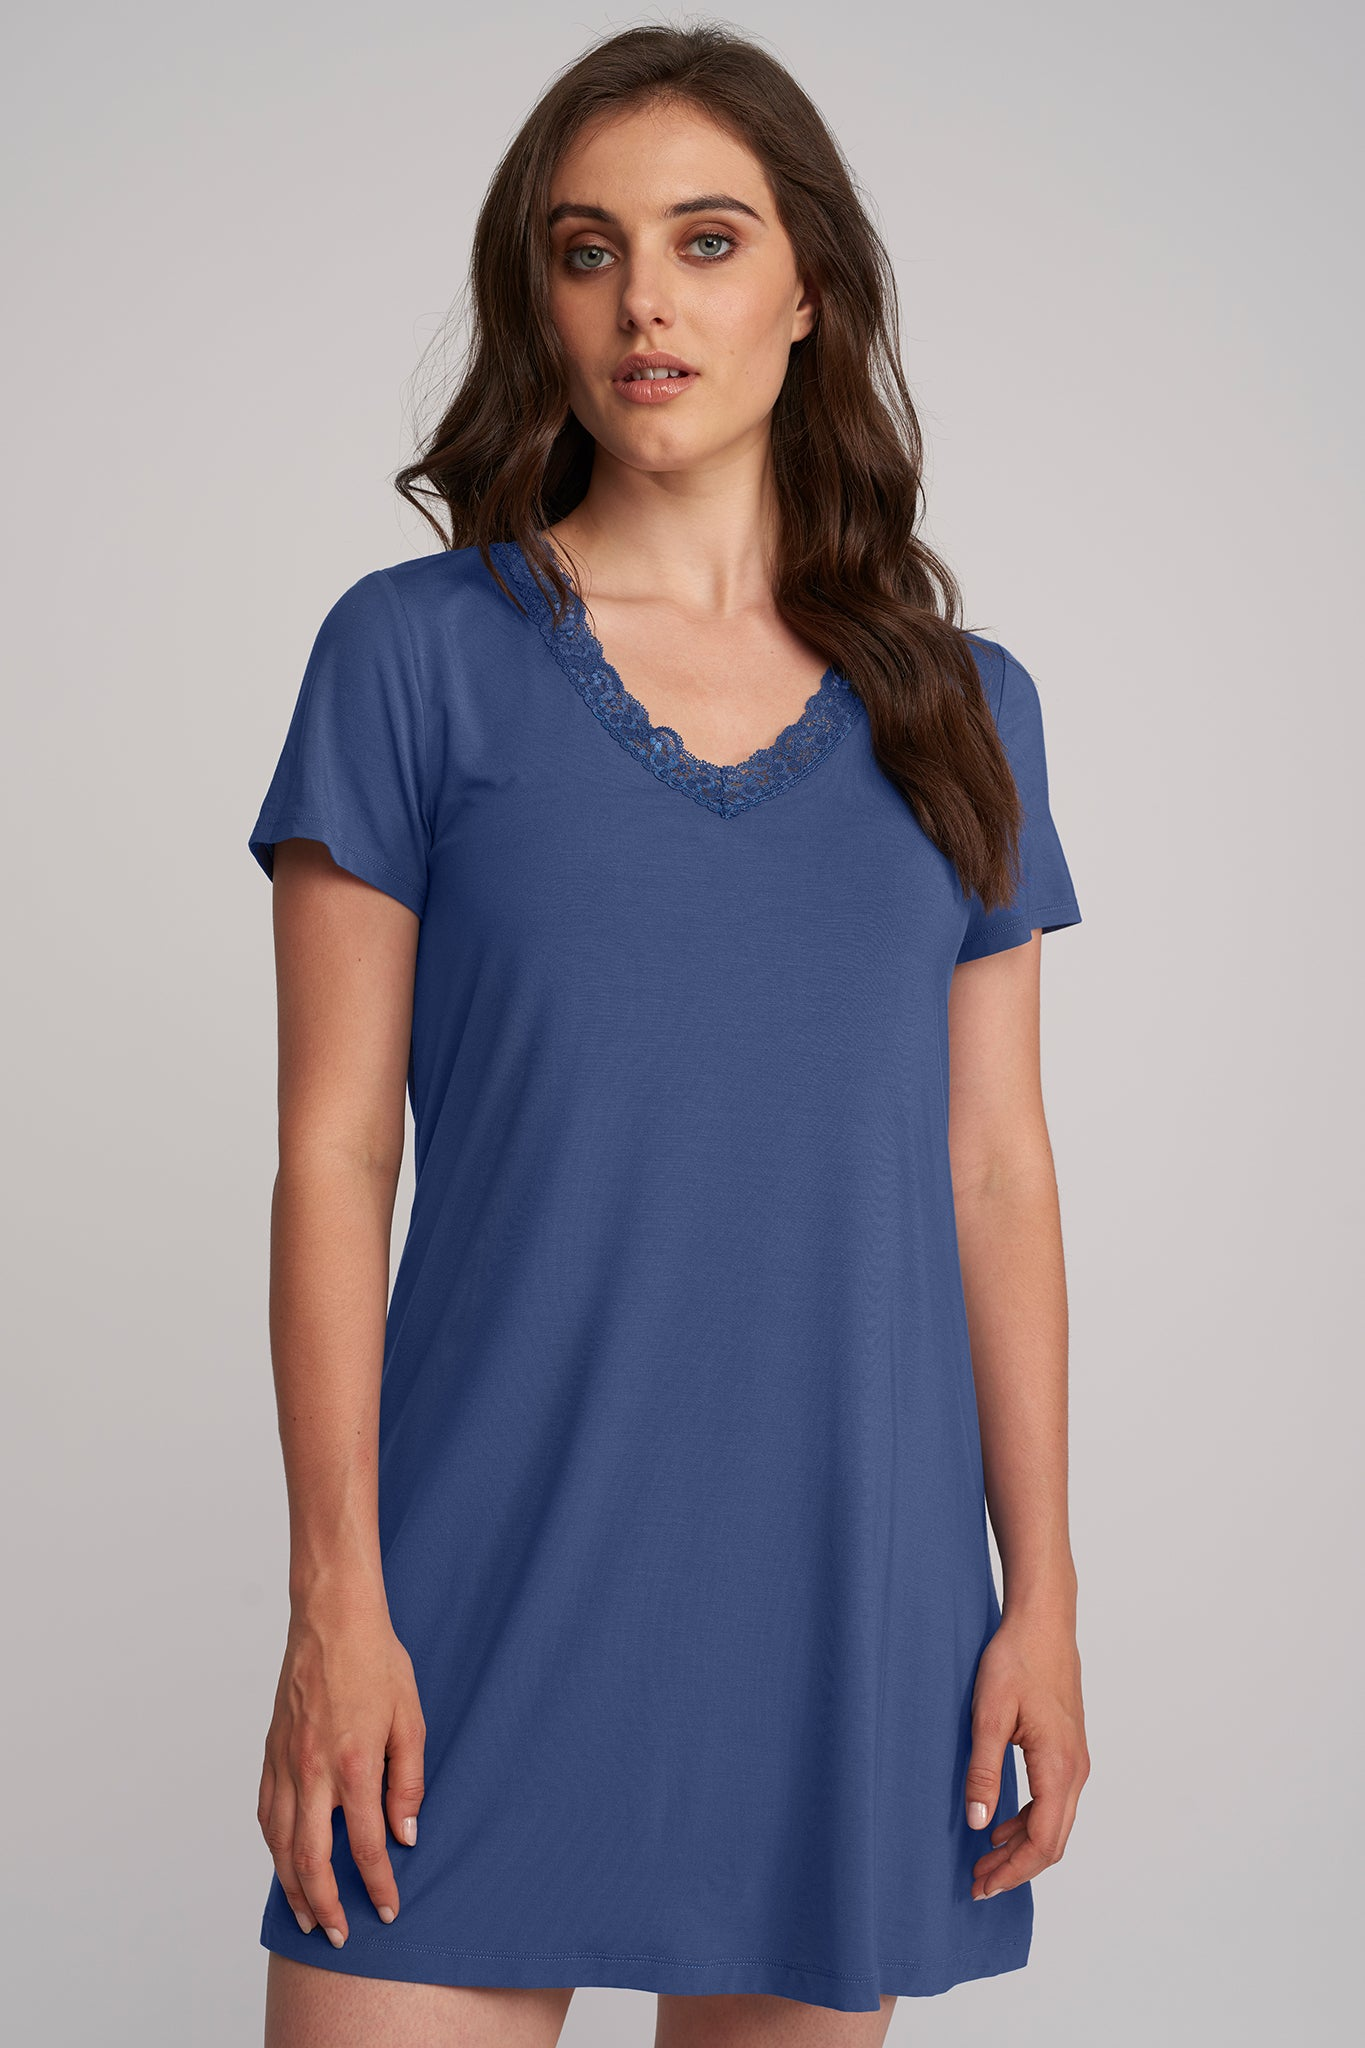 Short-sleeve Nightshirt